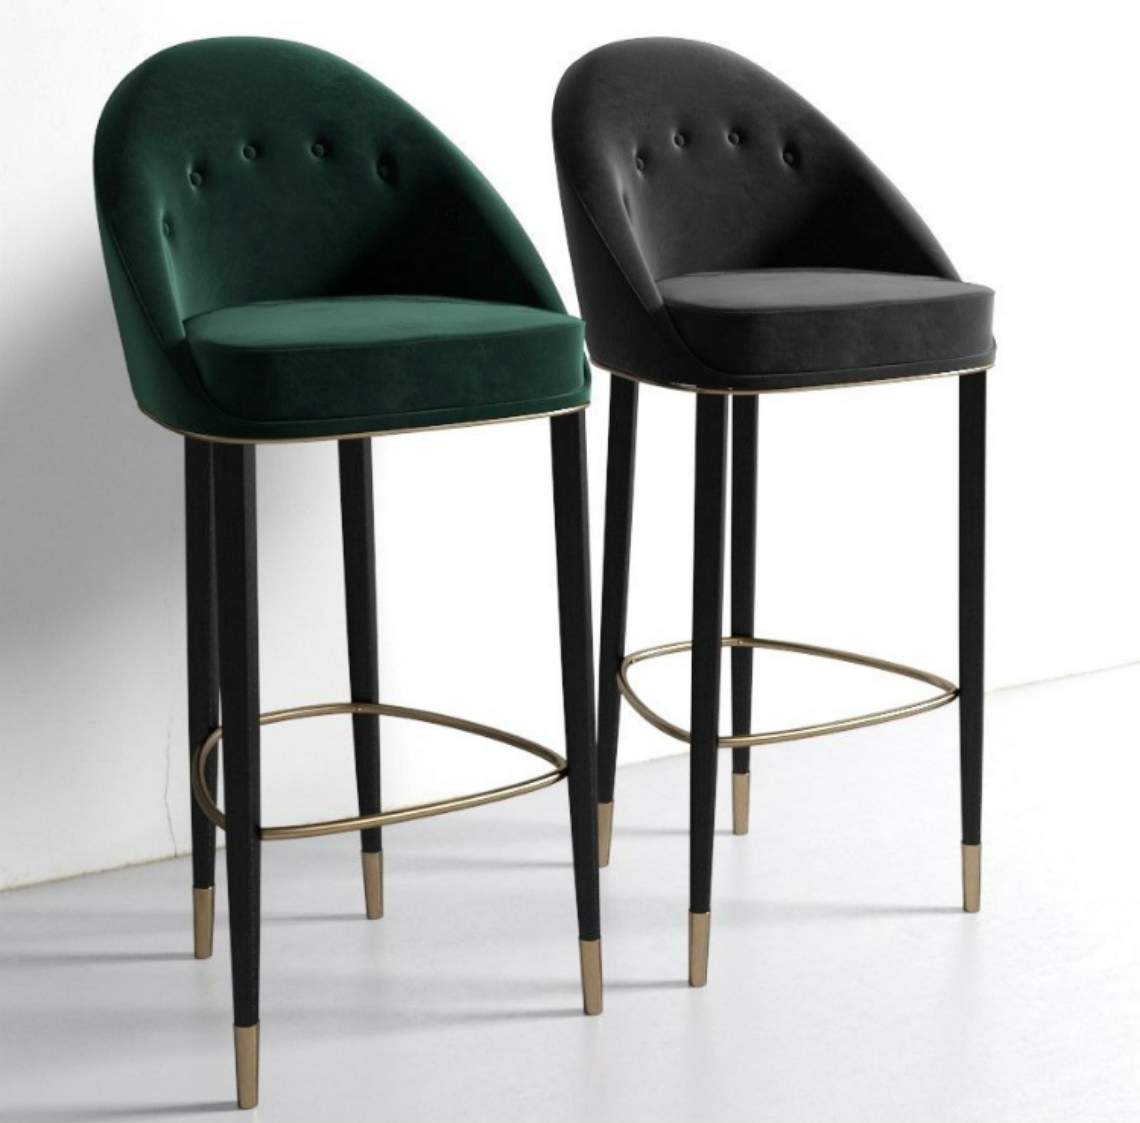 Top 10 Bar Chairs You Can't Miss